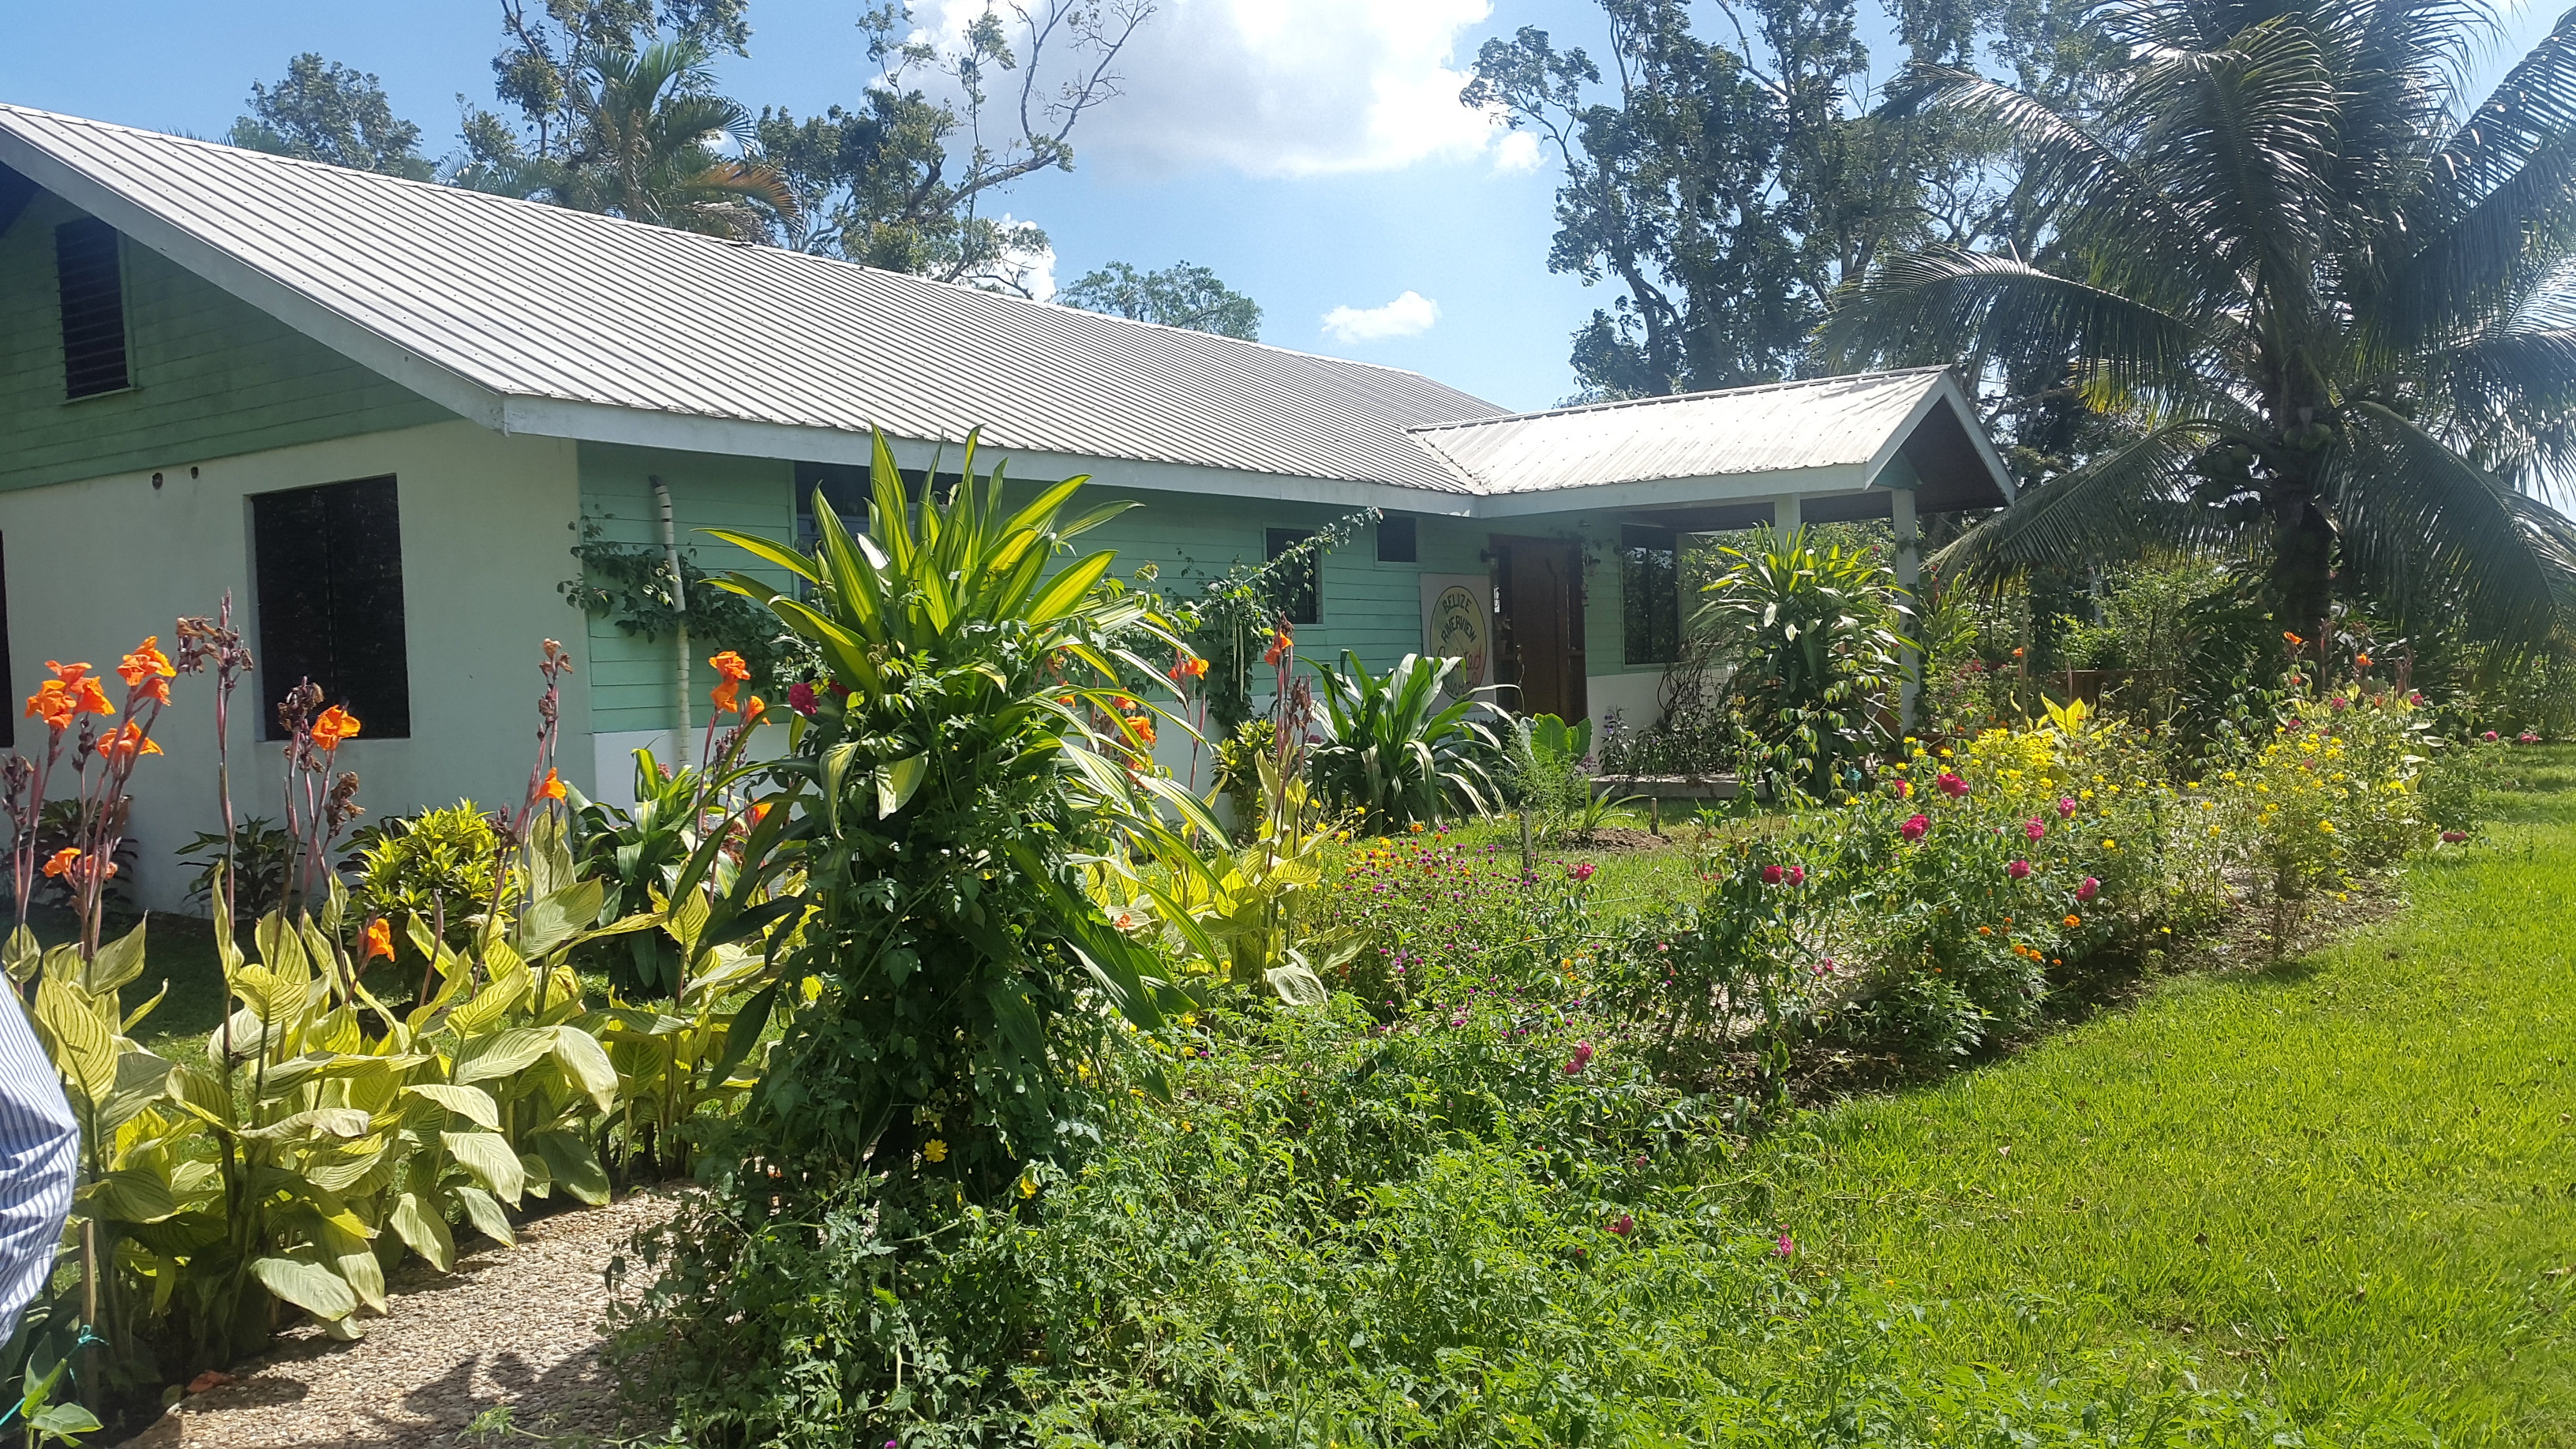 belize nursing home belize riverview 20170302_135119 - Riverview Gardens Nursing Home